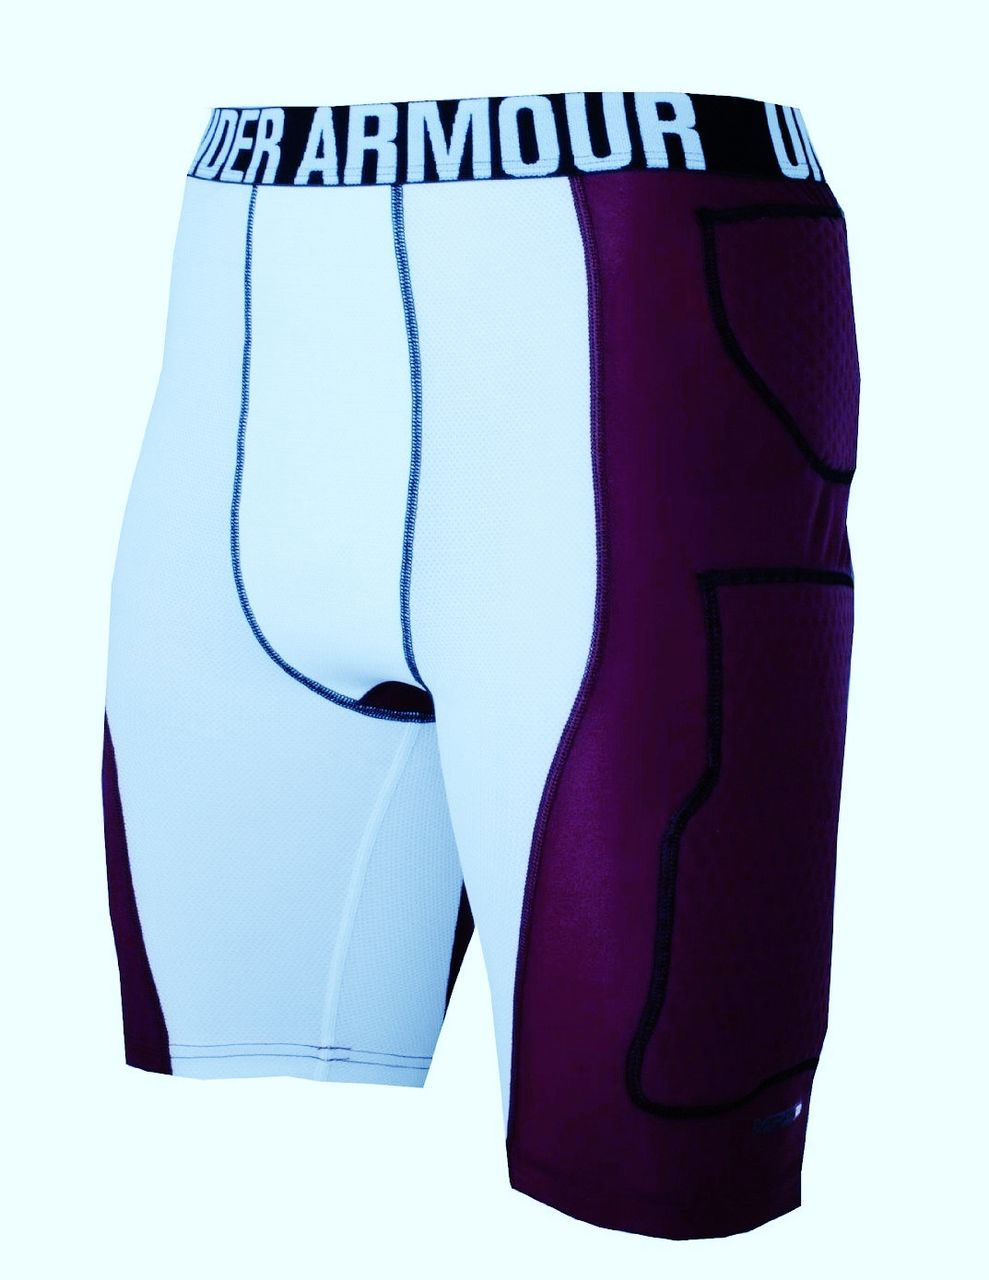 Under Armour Compression Shorts With Pads New Mens L Unde...